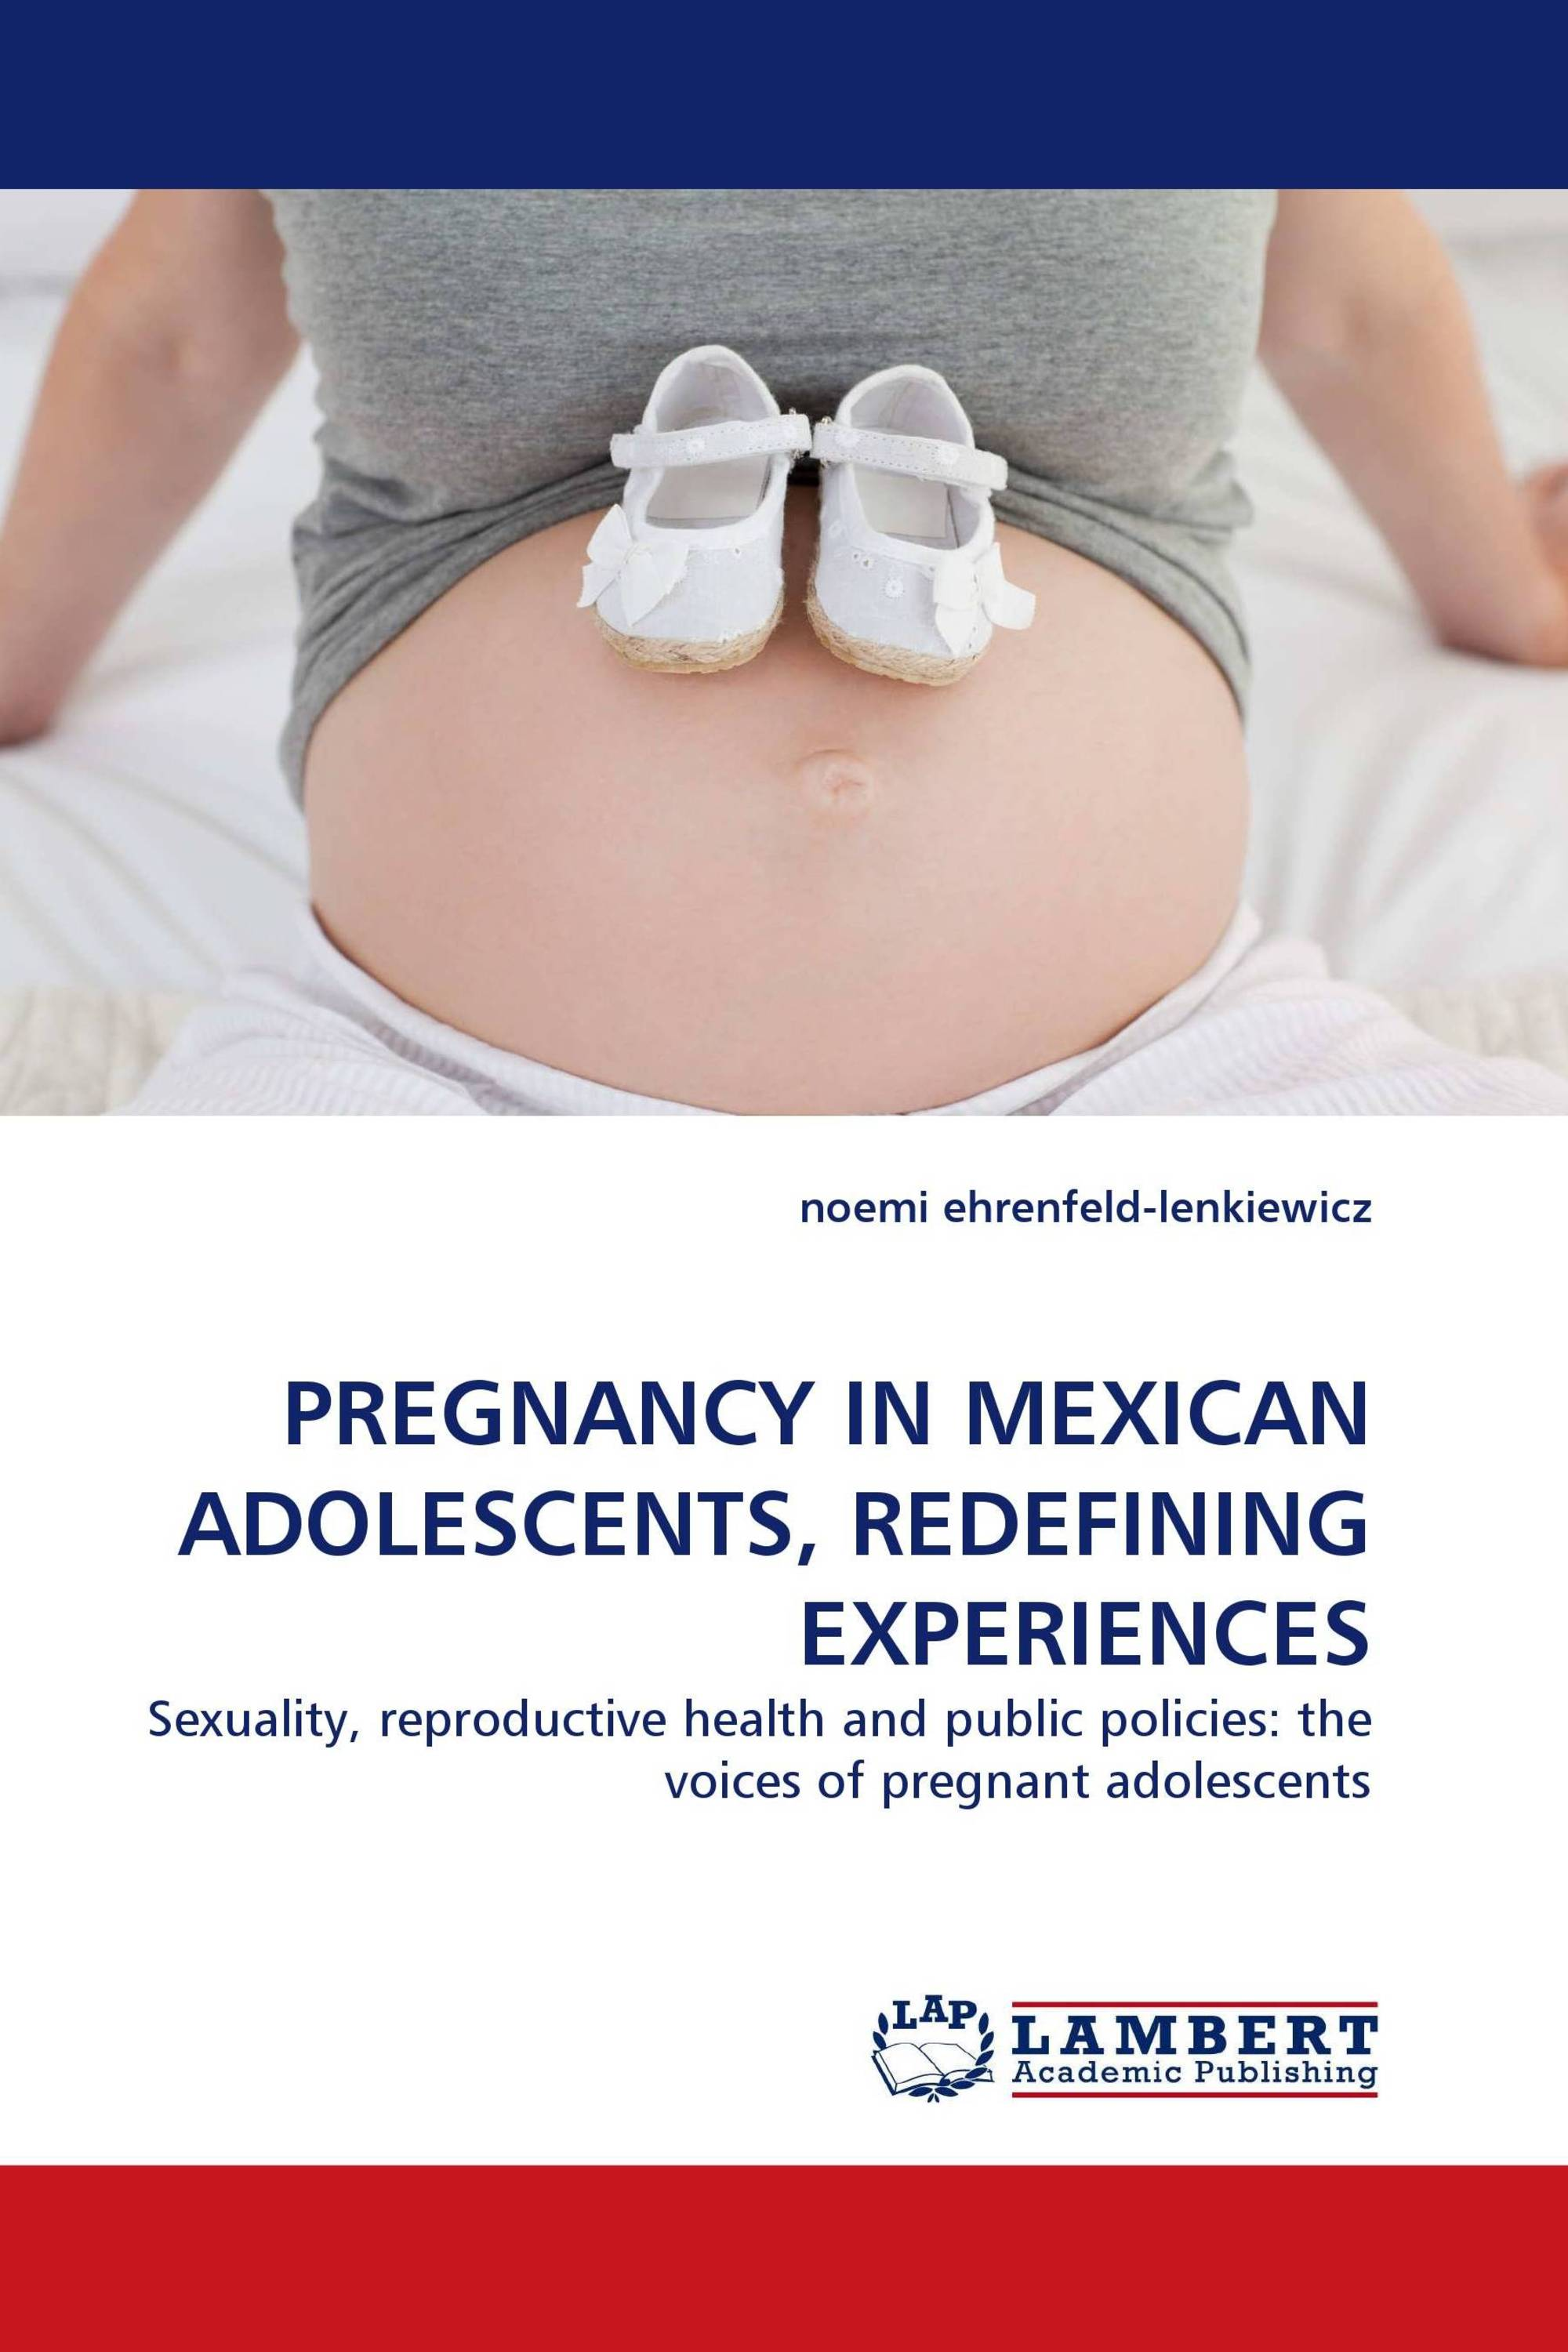 PREGNANCY IN MEXICAN ADOLESCENTS, REDEFINING EXPERIENCES